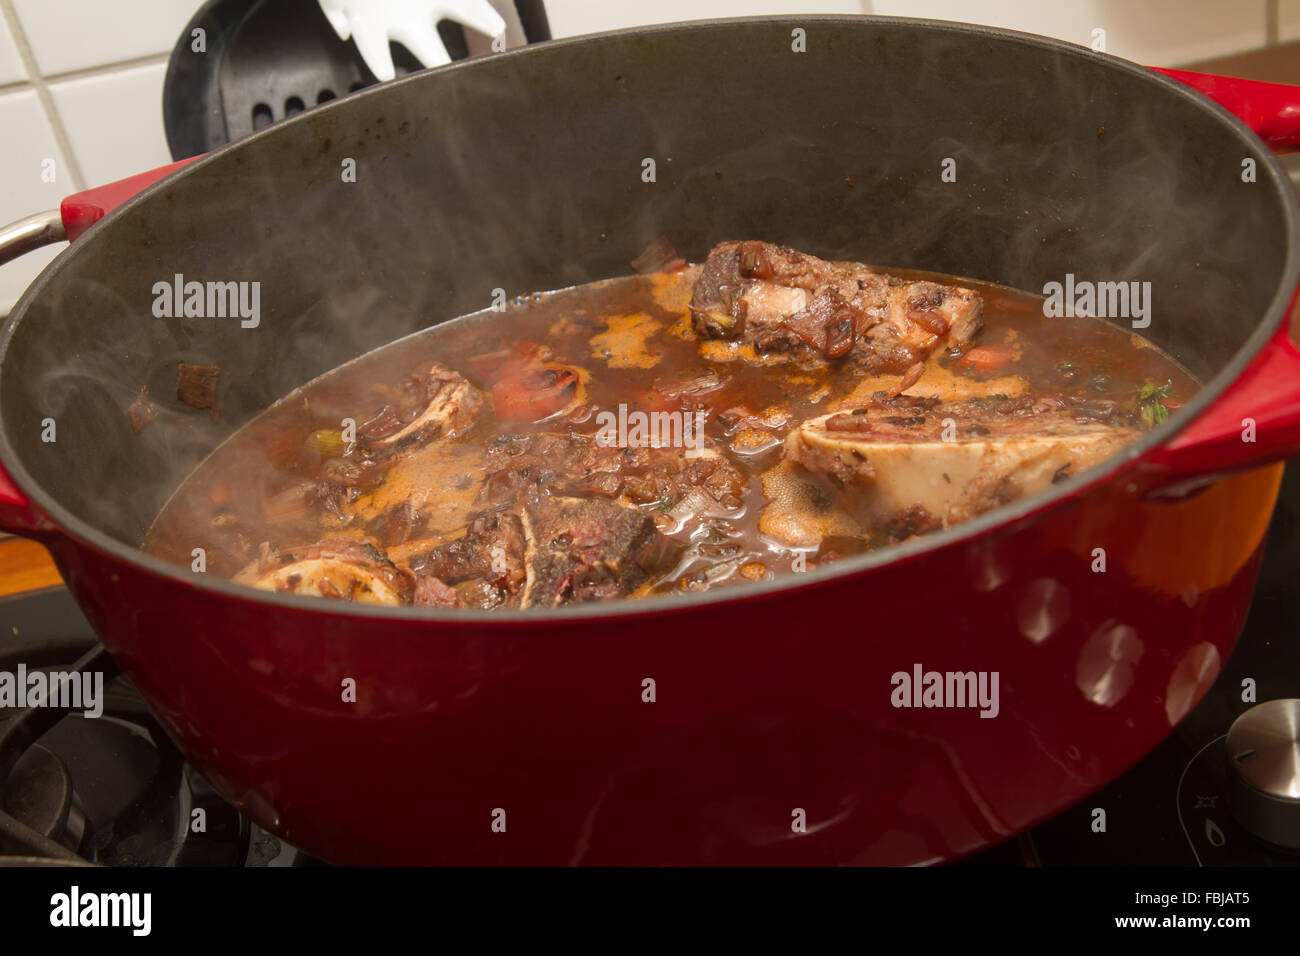 Rouladen in a roasting dish - Stock Image